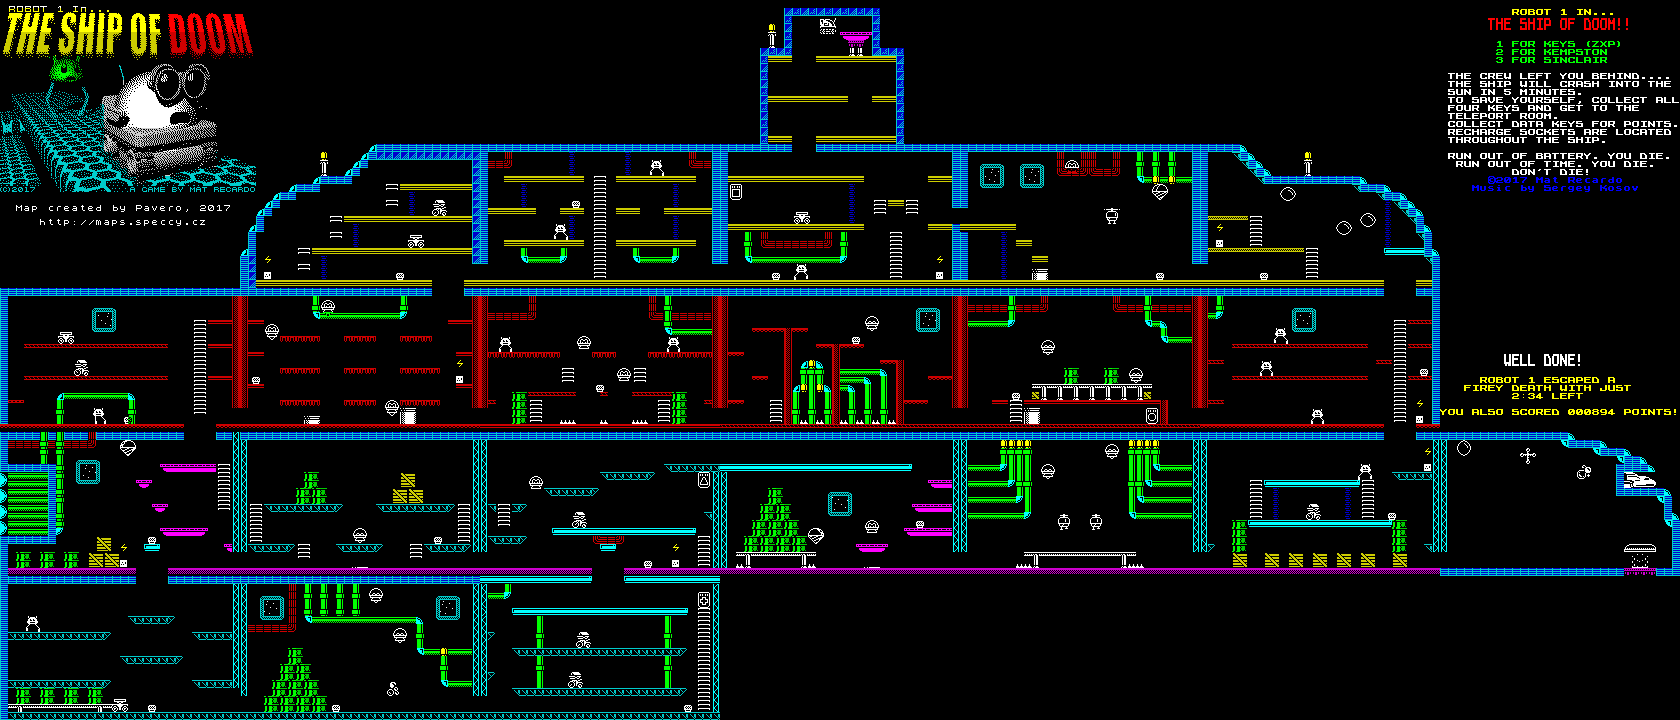 Robot 1 in the Ship of Doom - The Map